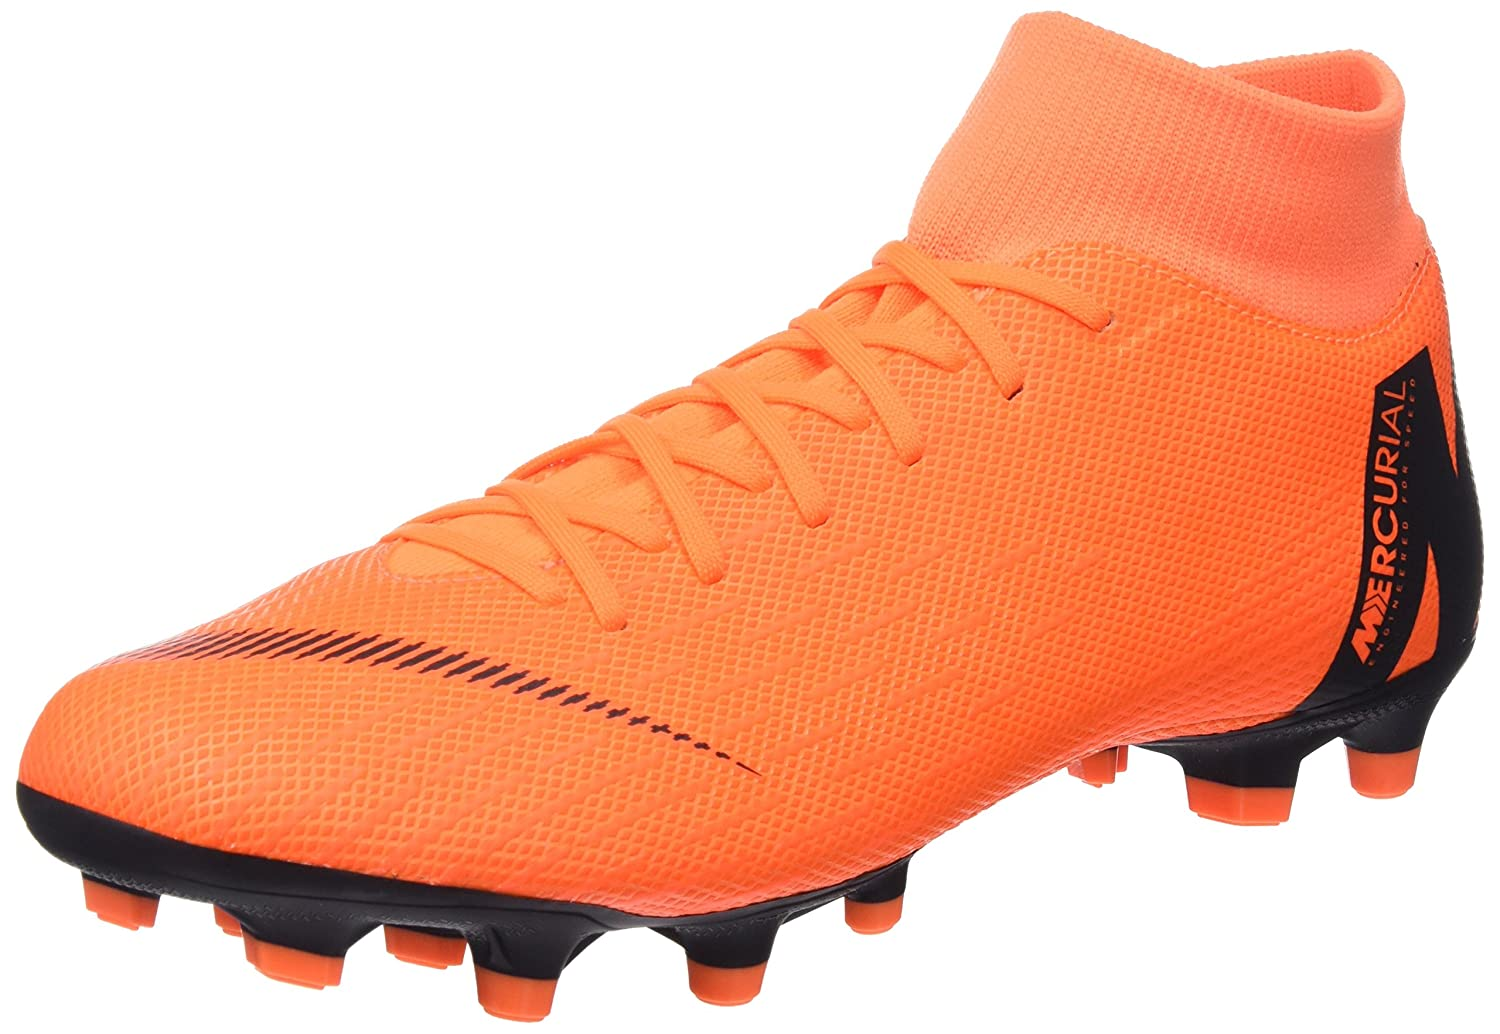 MultiCouleure (Total Orange   noir-t 810) Nike Mercurial Superfly VI Academy MG, Chaussures de Football Homme